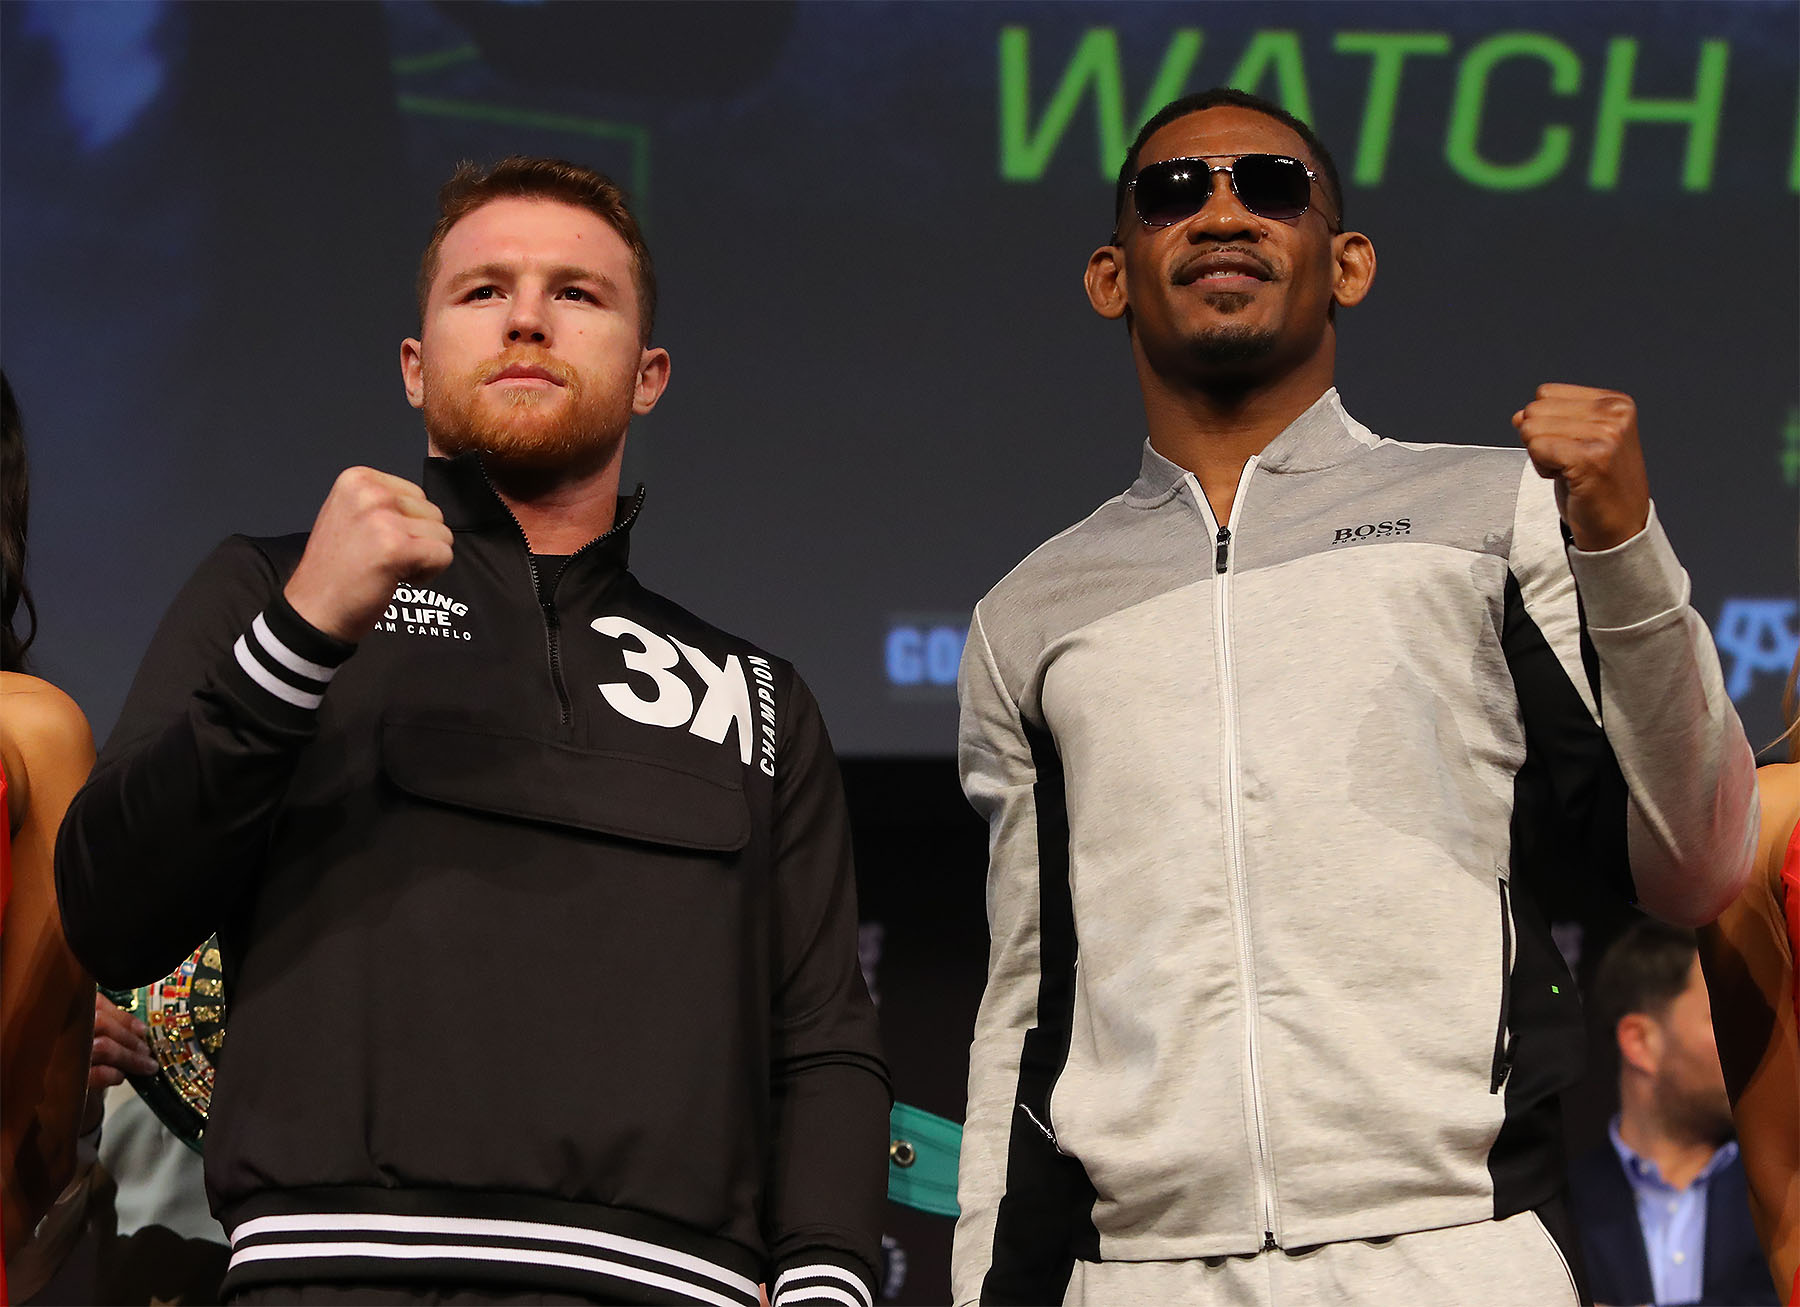 CaneloJacobsLVPC Hoganphotos4 - Final Press Conf Quotes: Canelo Alvarez vs Daniel Jacobs